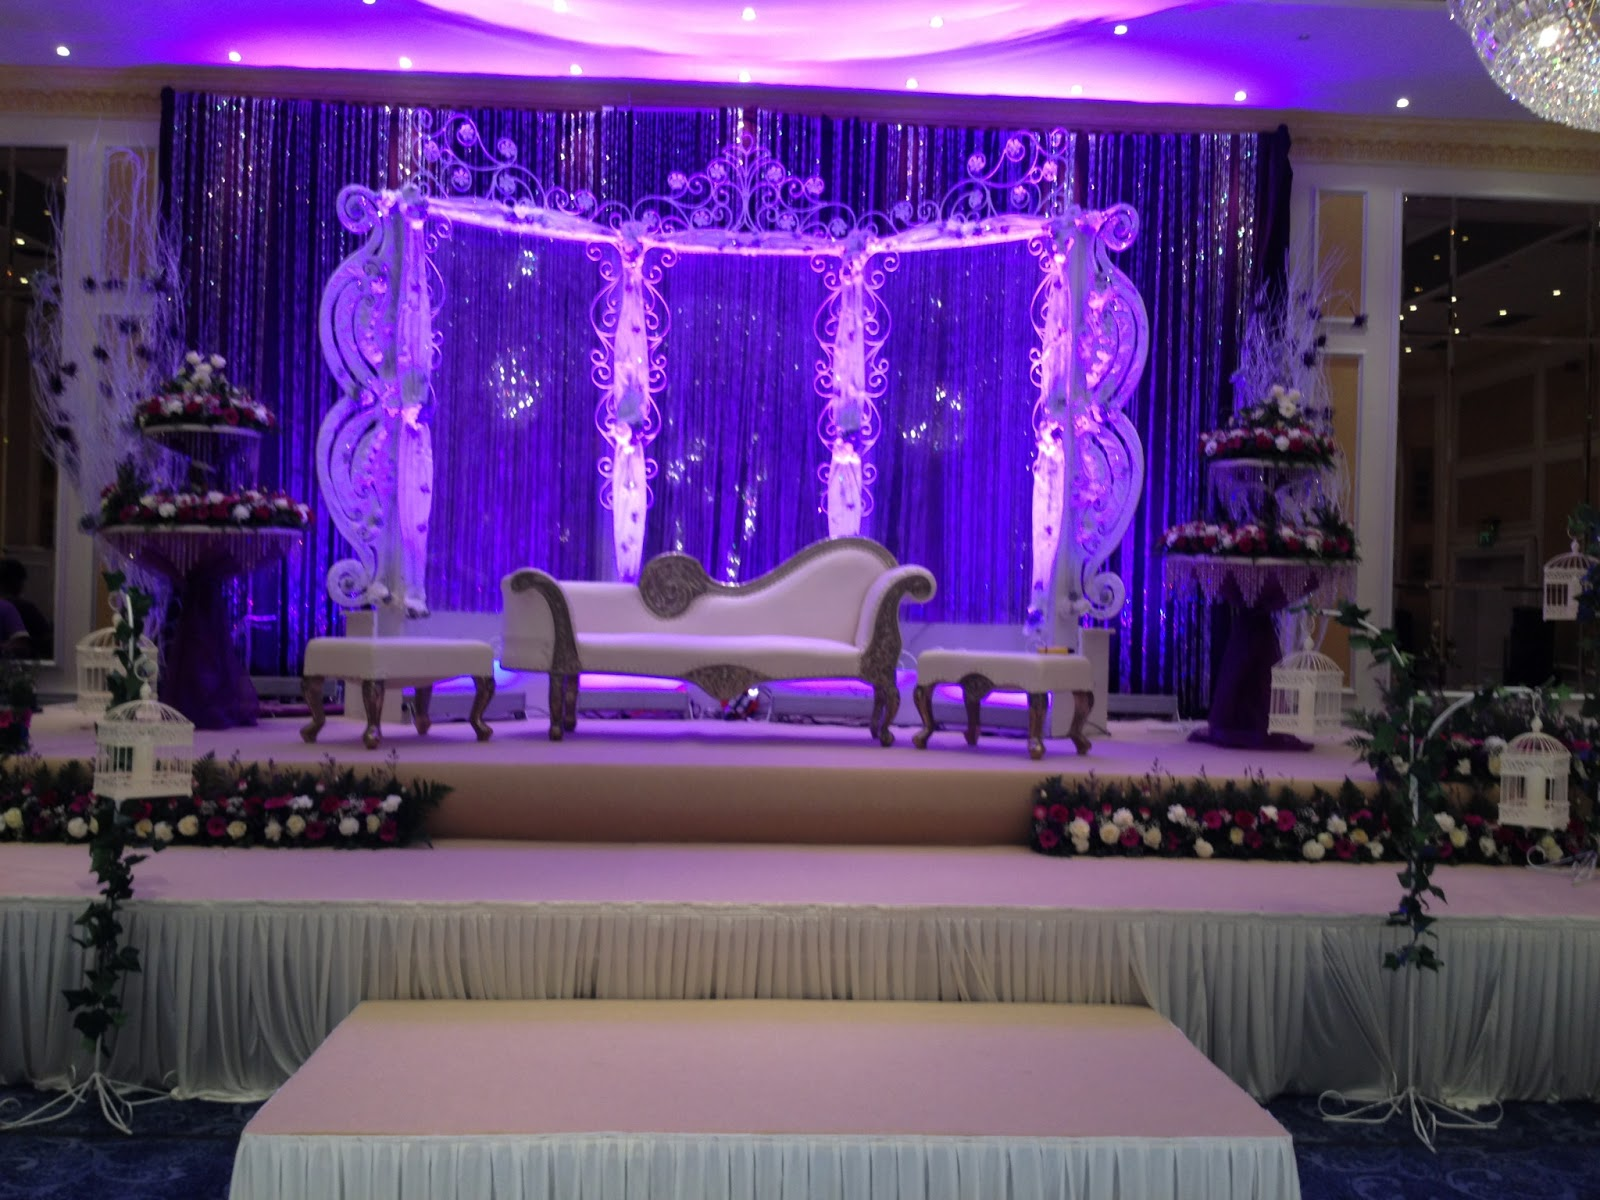 Wedding decoration leicester choice image wedding dress wedding decoration leicester images wedding dress decoration and new asian wedding stage decoration birmingham wedding asian junglespirit Images